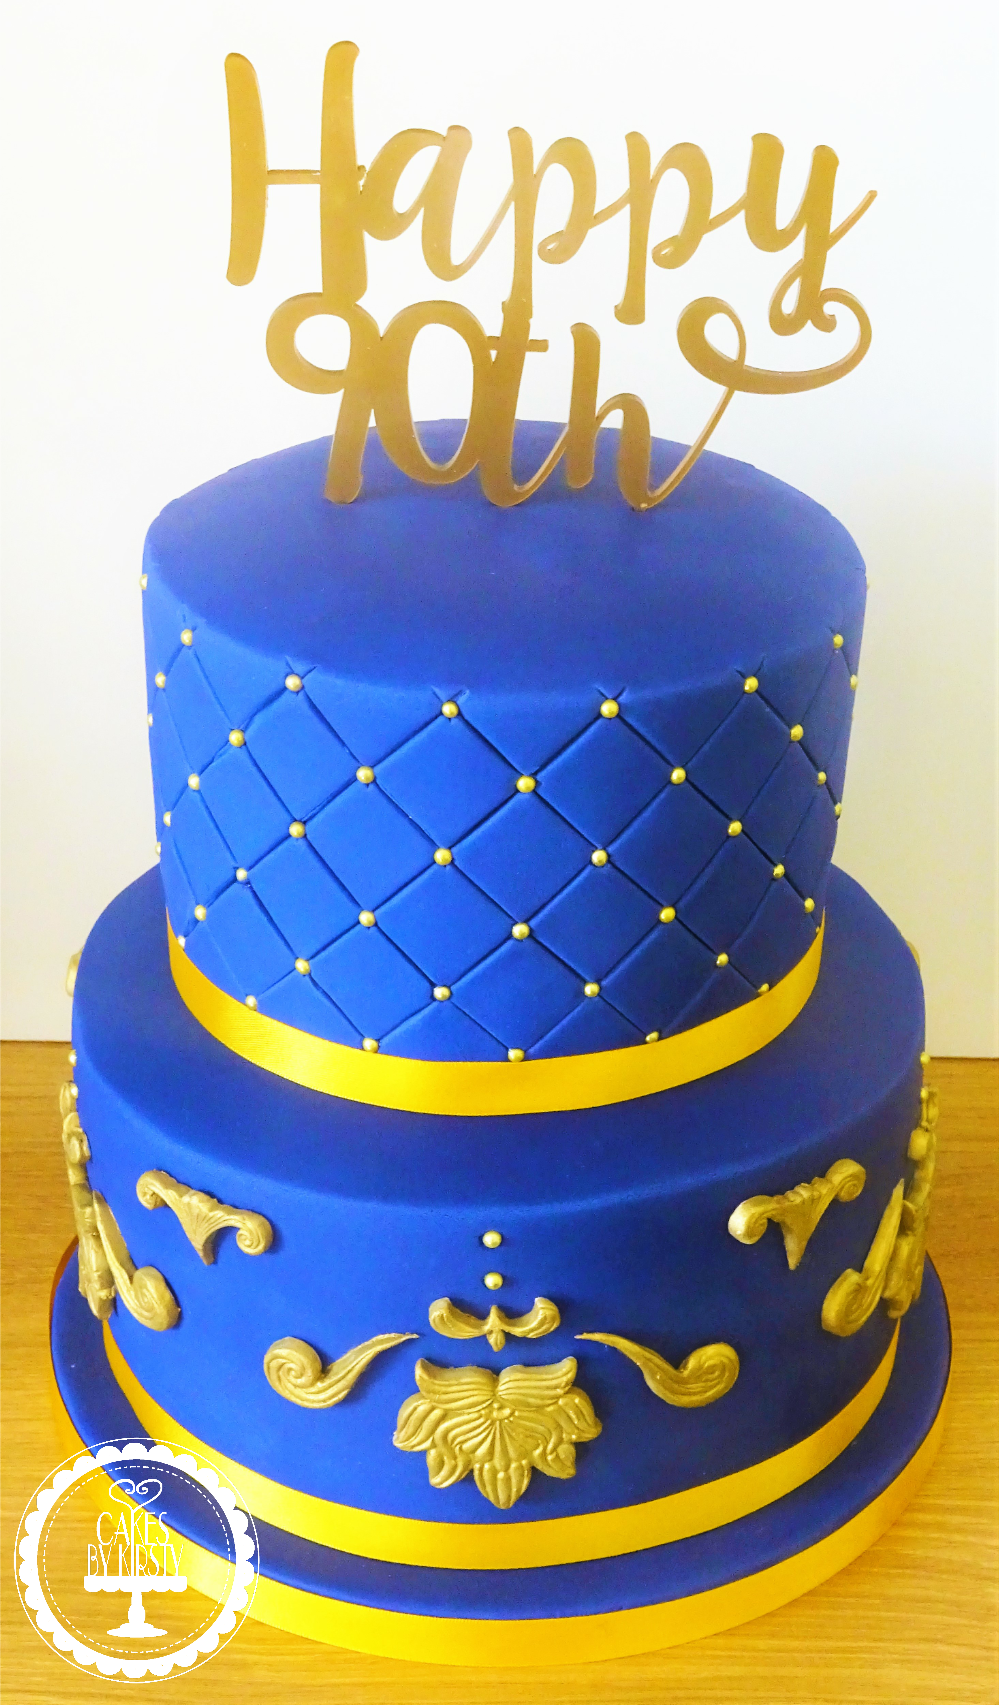 Regal 90th Cake